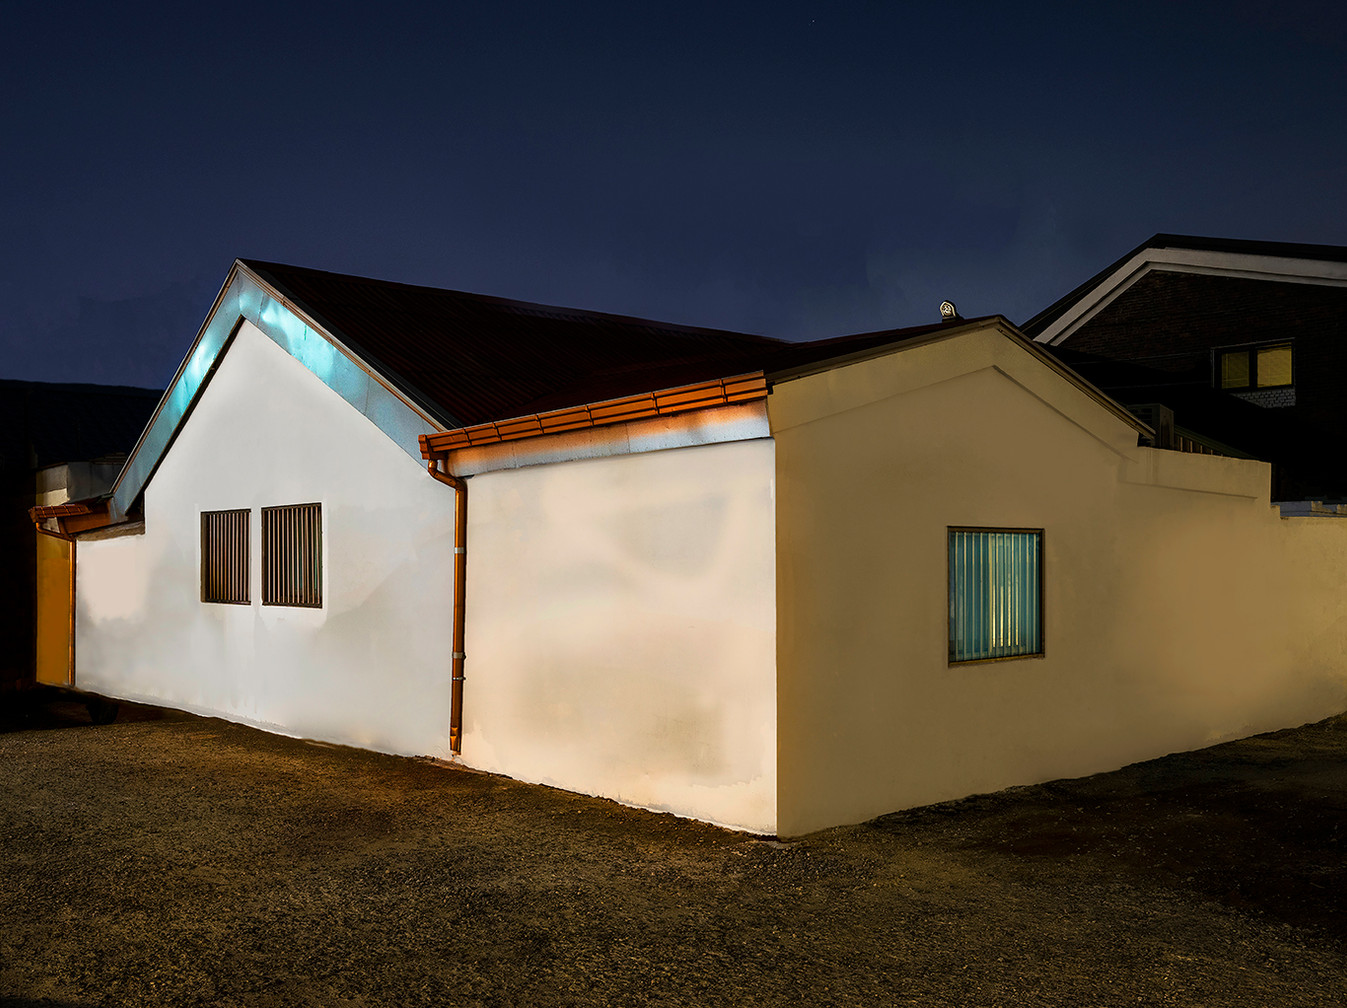 The Houses at Night #01